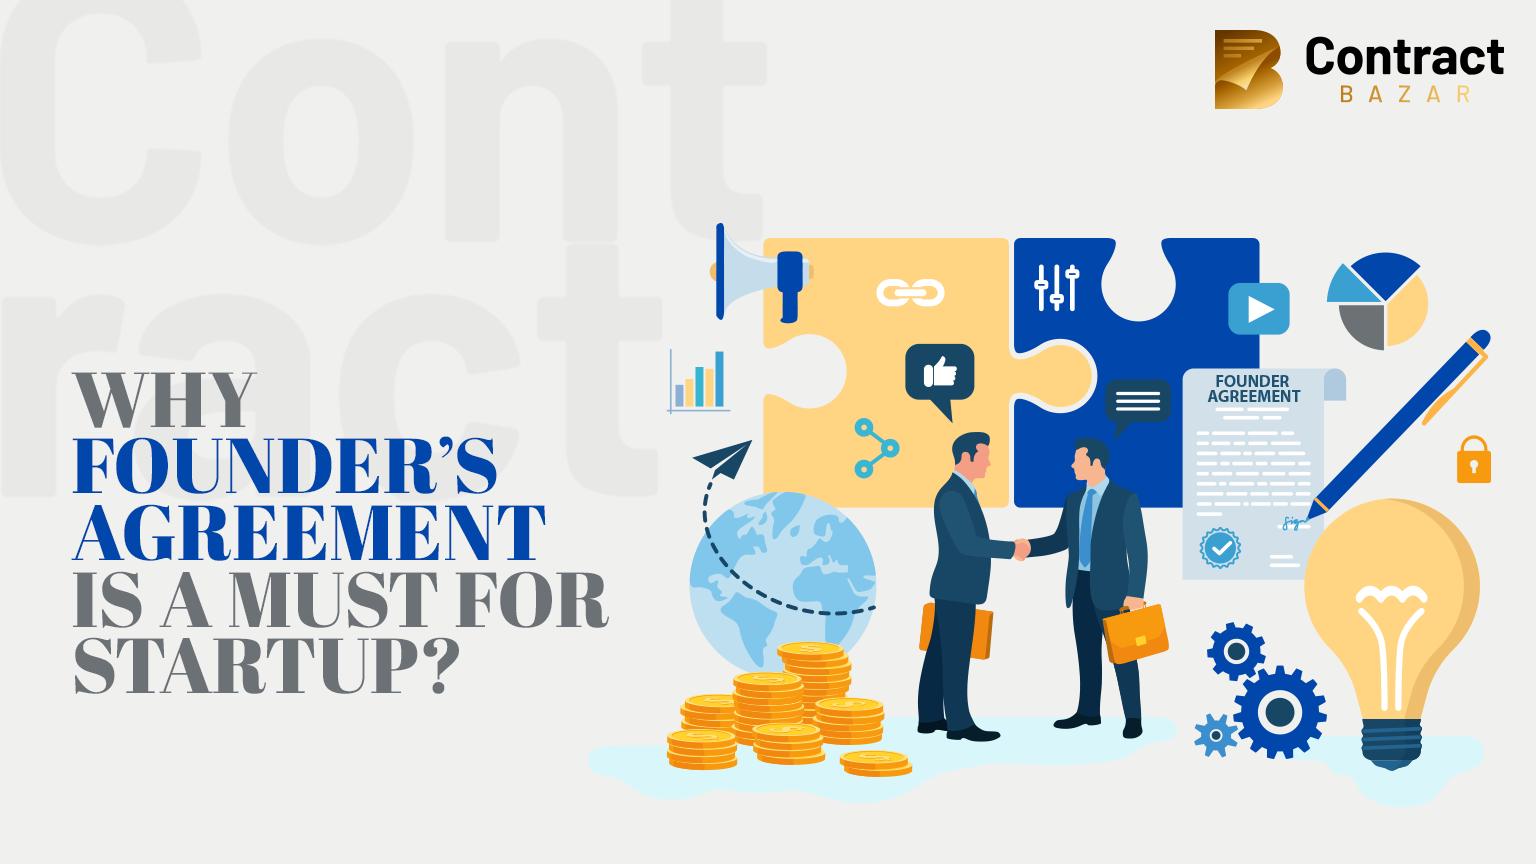 founder's agreement - Contract Bazar